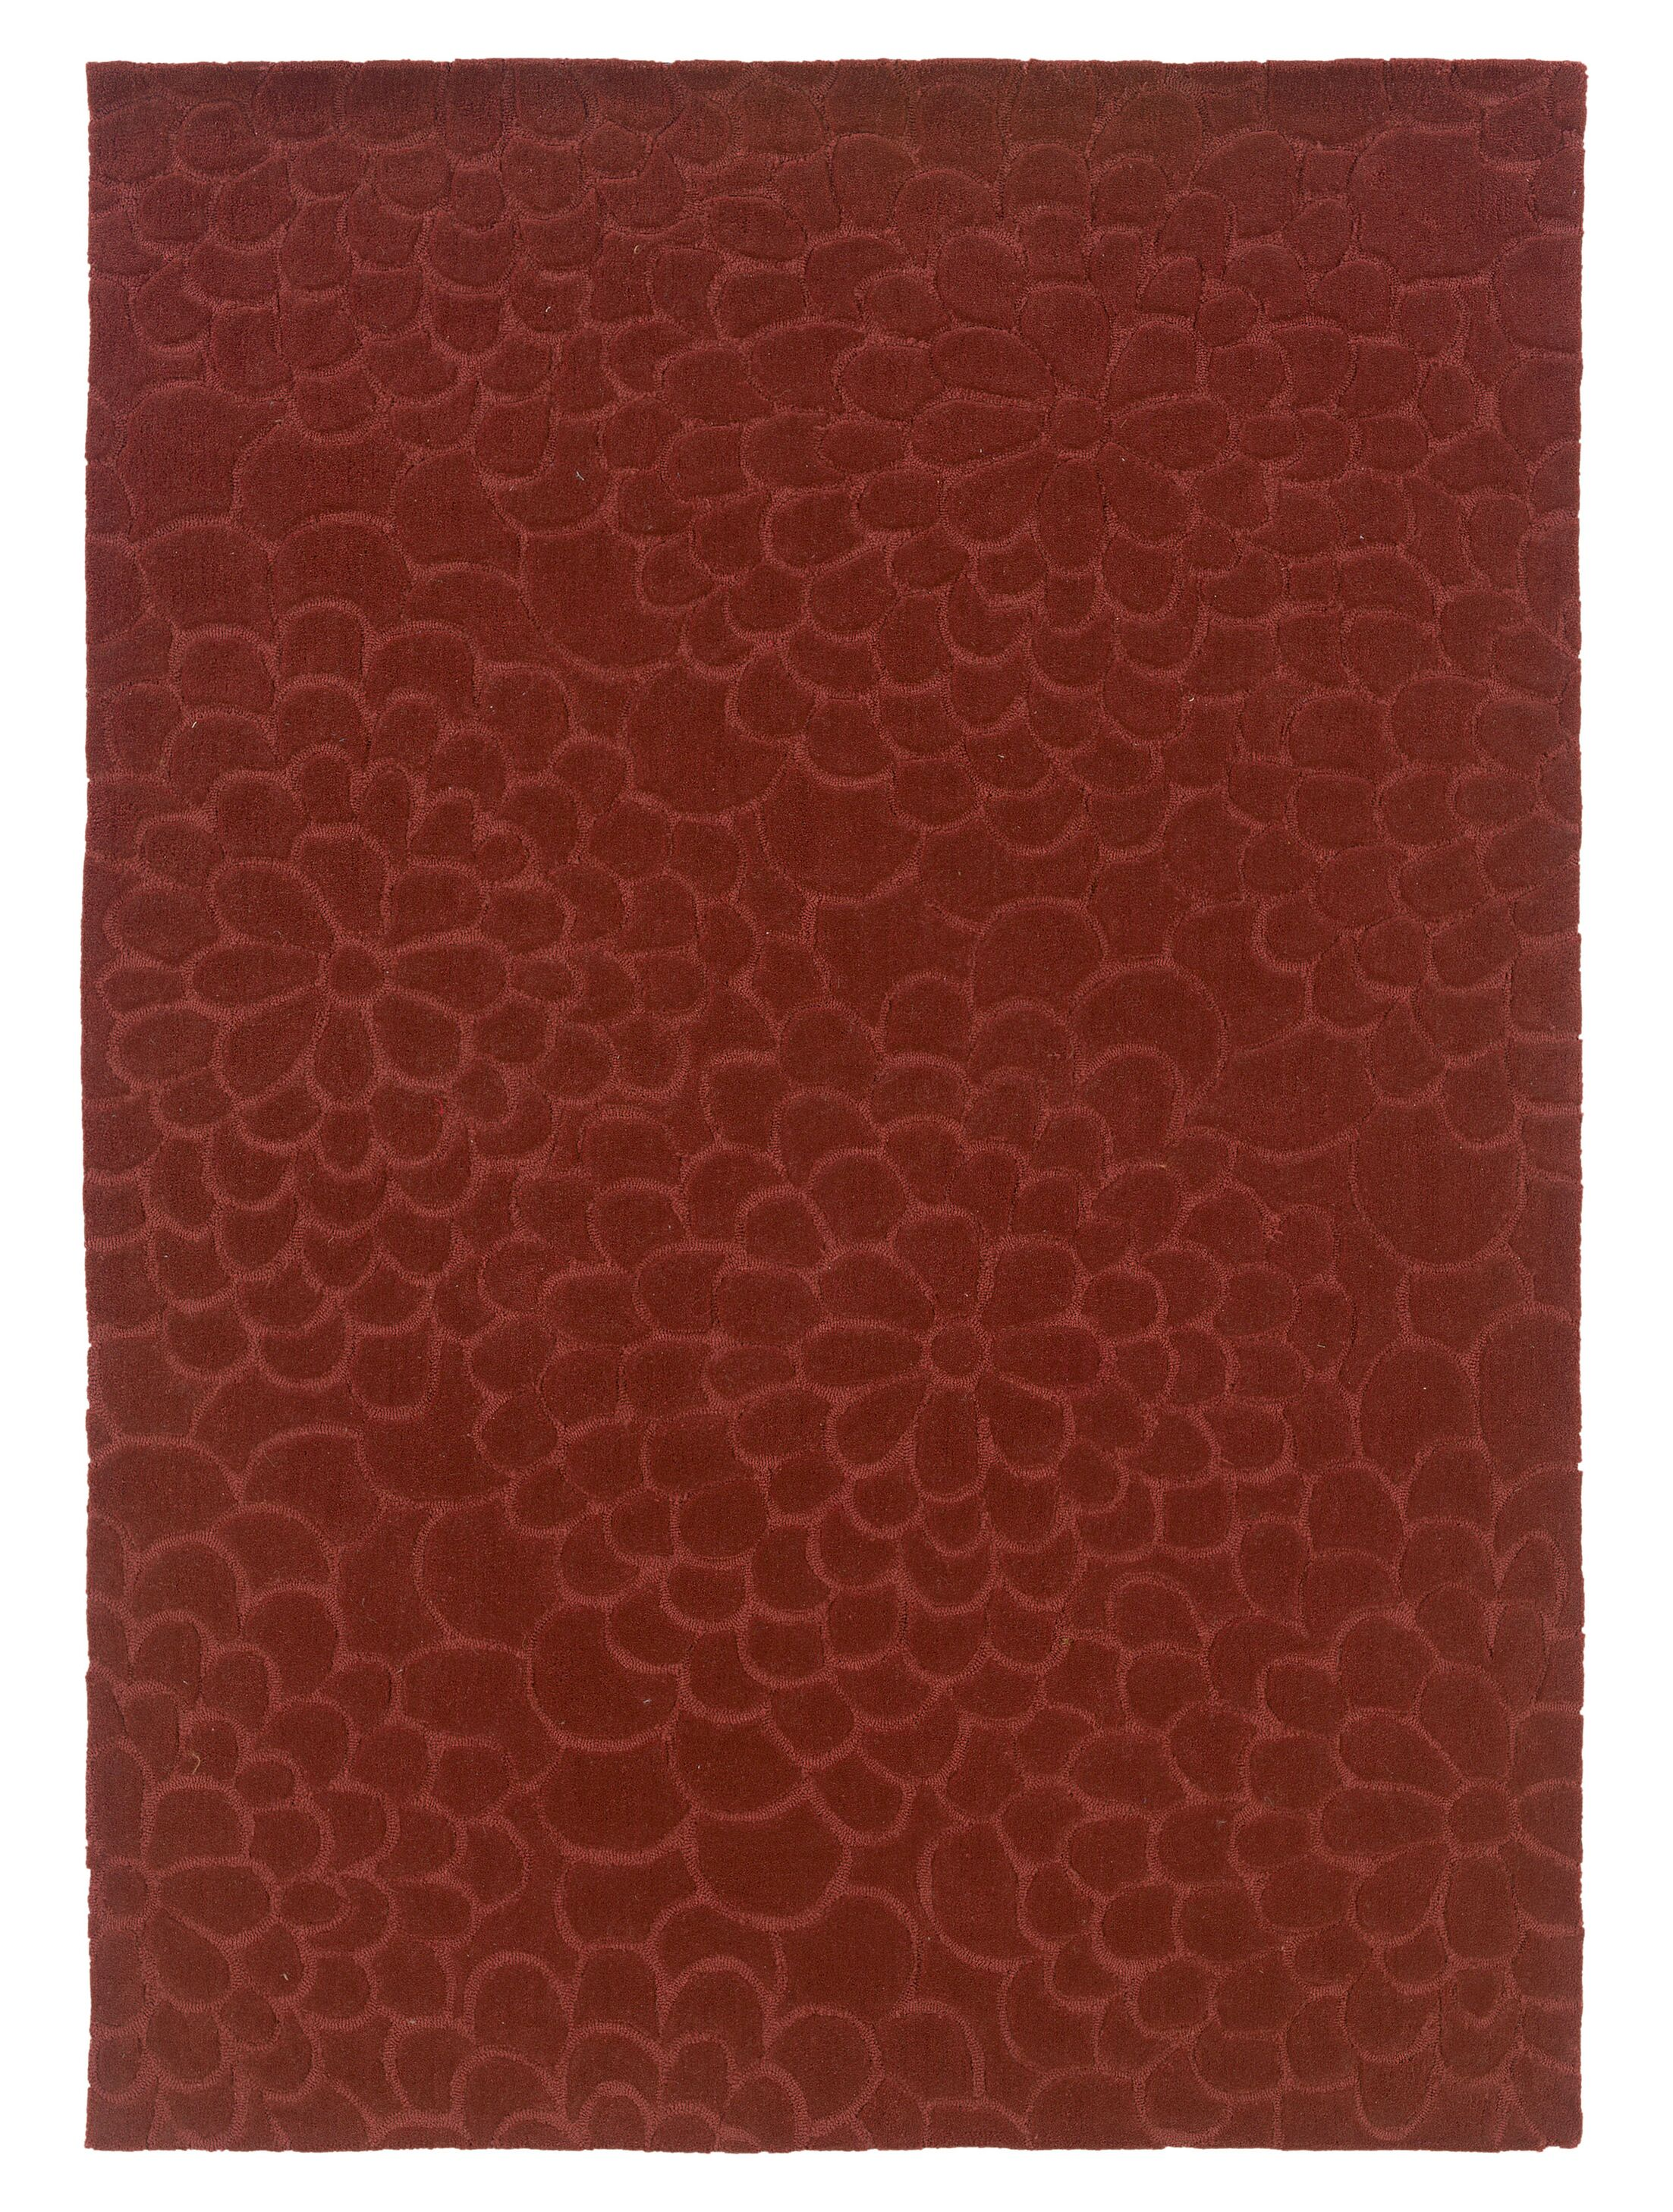 Beaded Hand-Tufted Rust Area Rug Rug Size: Rectangle 8' x 10'